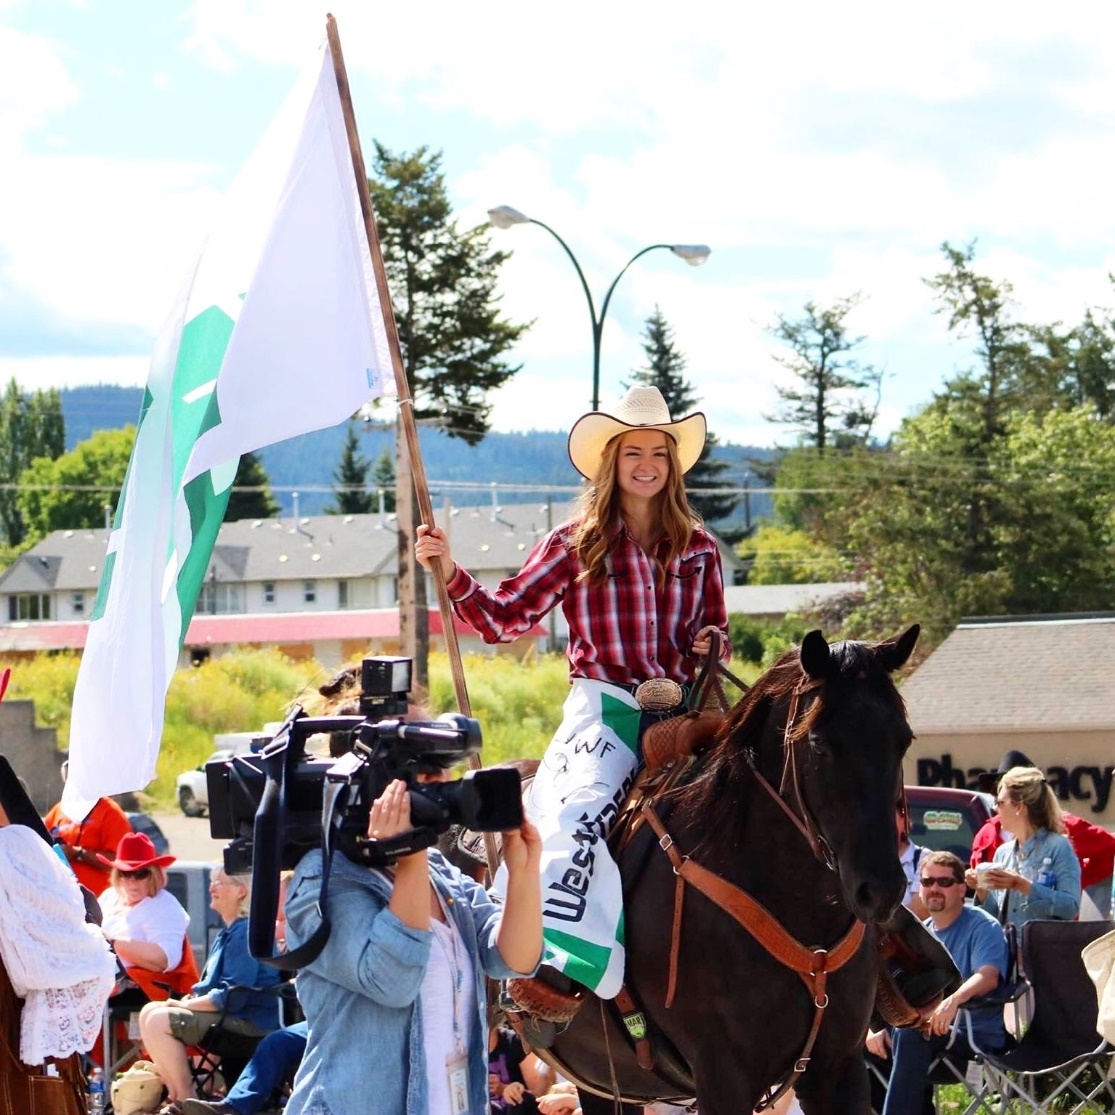 Credit: Shelley Porter (for more awesome stampede images, check her out on Facebook!) Nahoni and I proudly showing off the West Fraser Flag during the parade. As you can tell, I was incredibly happy to be there!